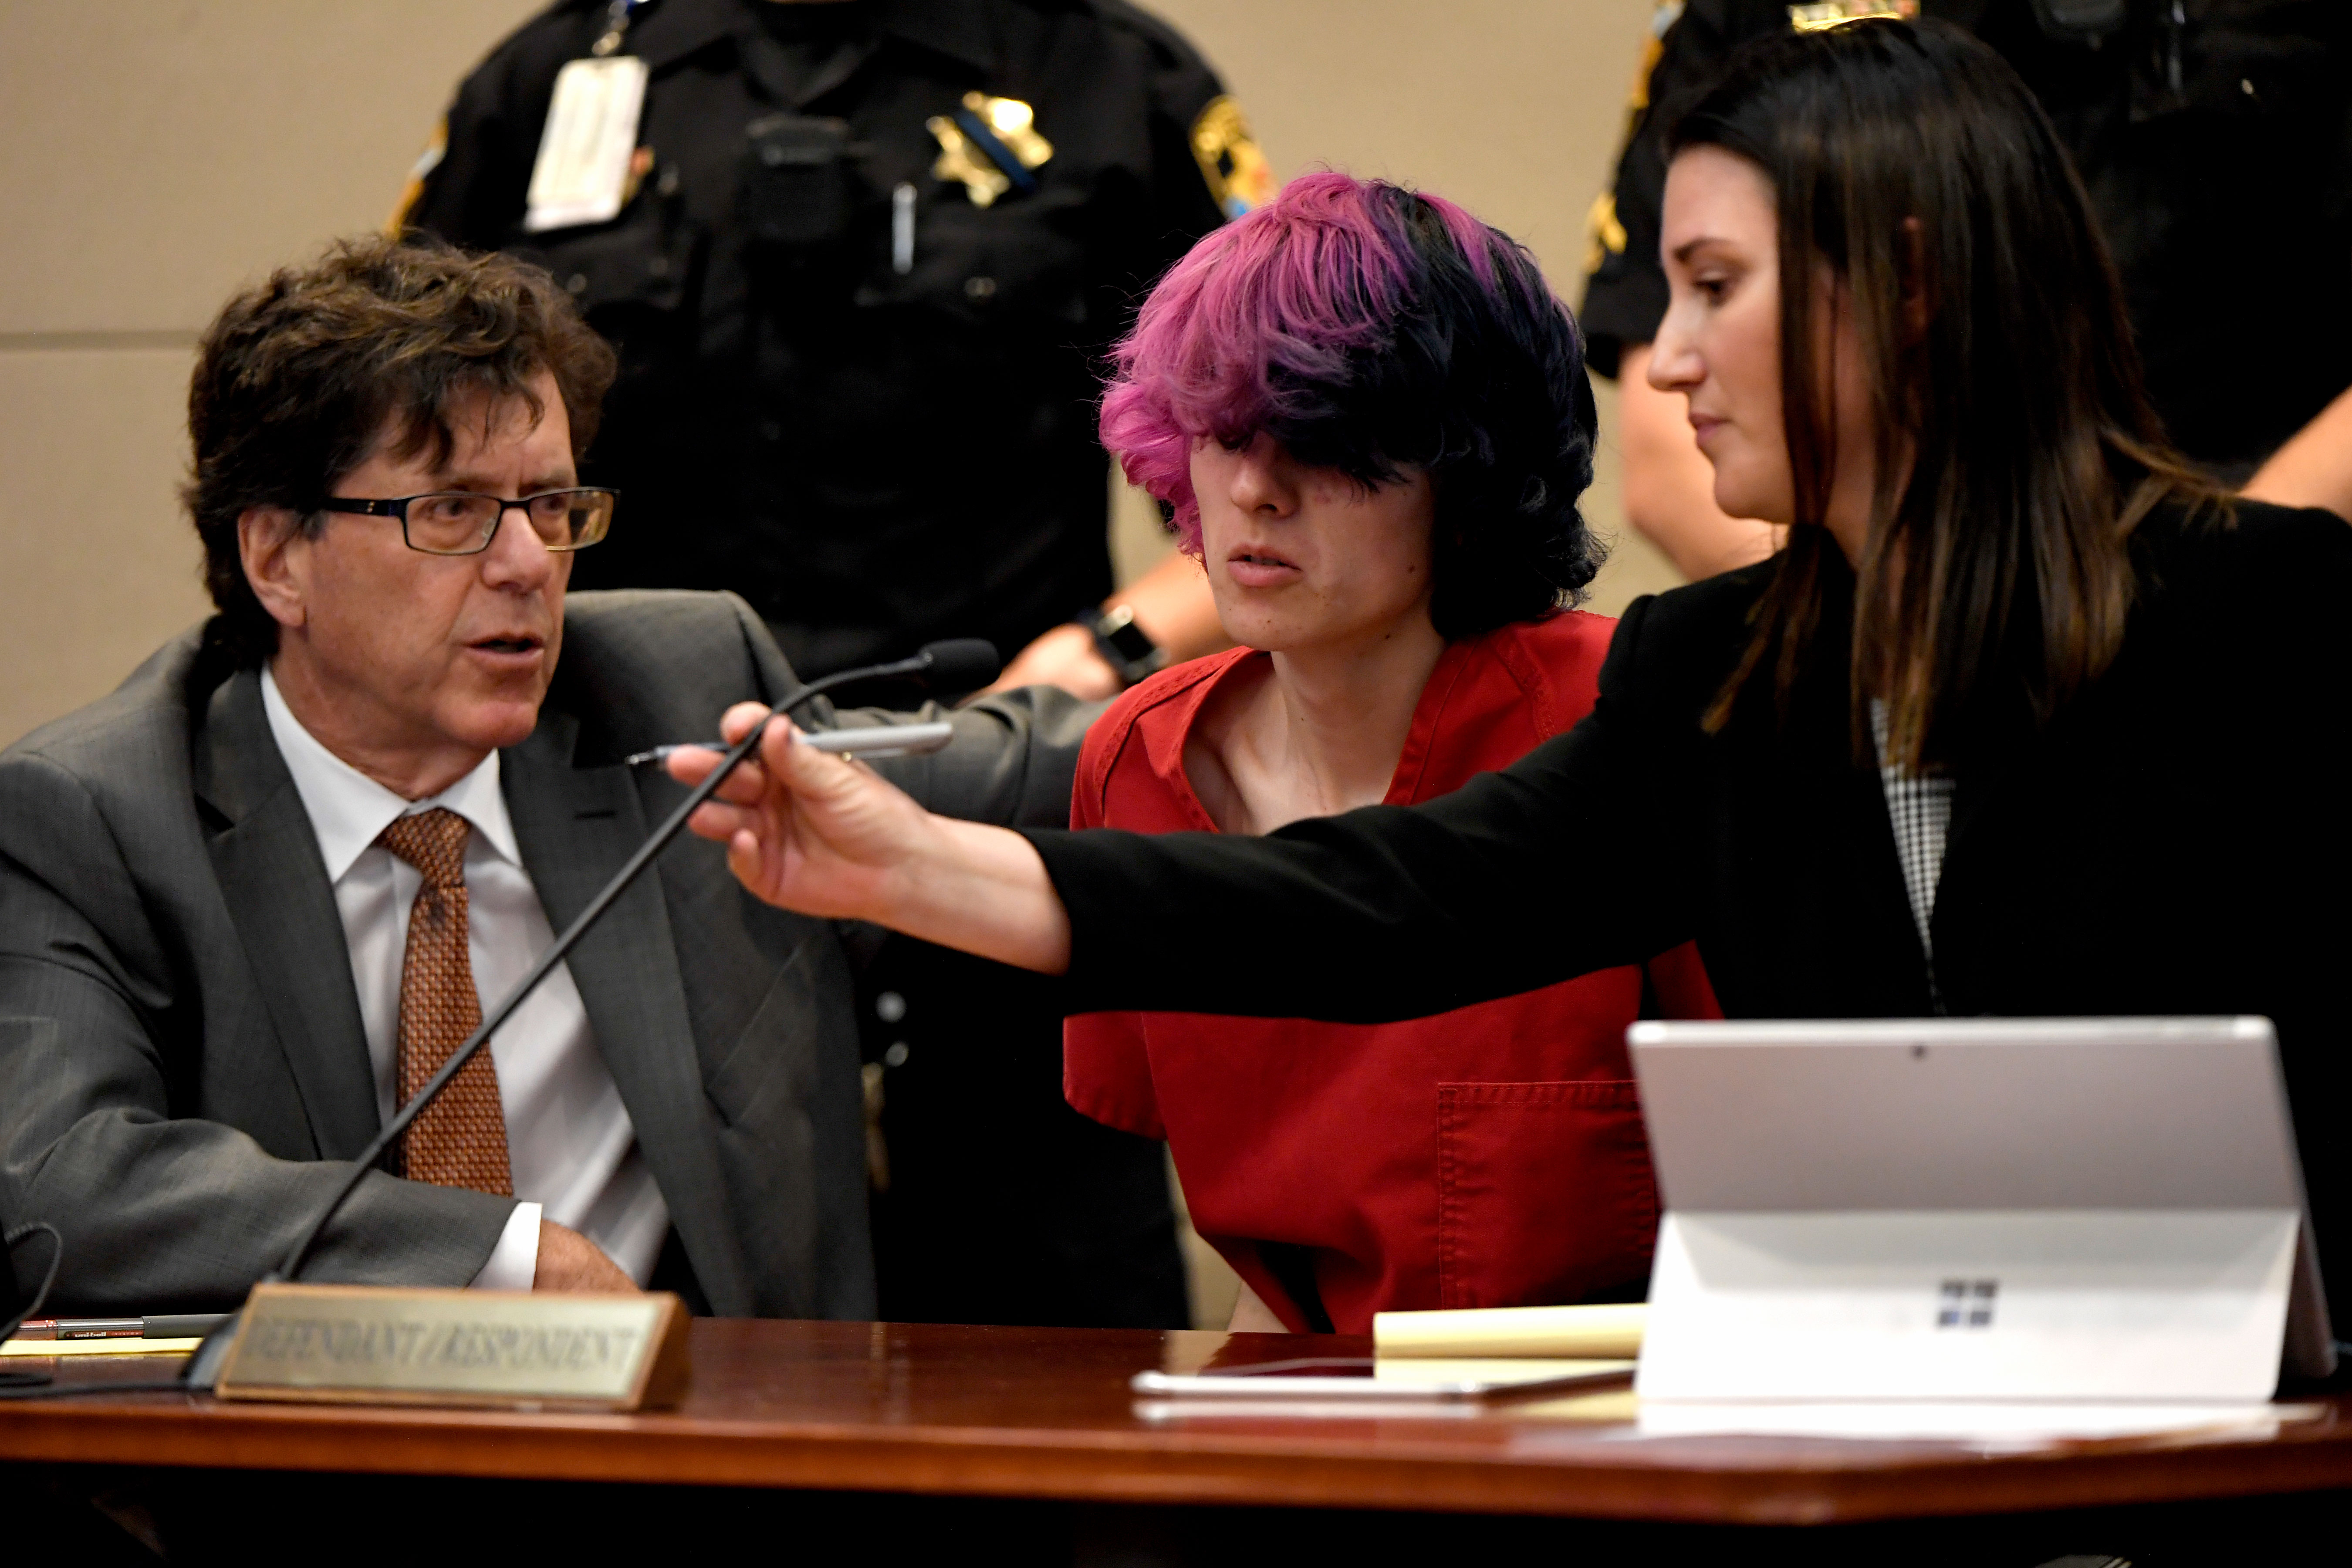 Photo: STEM School Shooting 9 | Devon Erickson 1st Court Appearence - AP